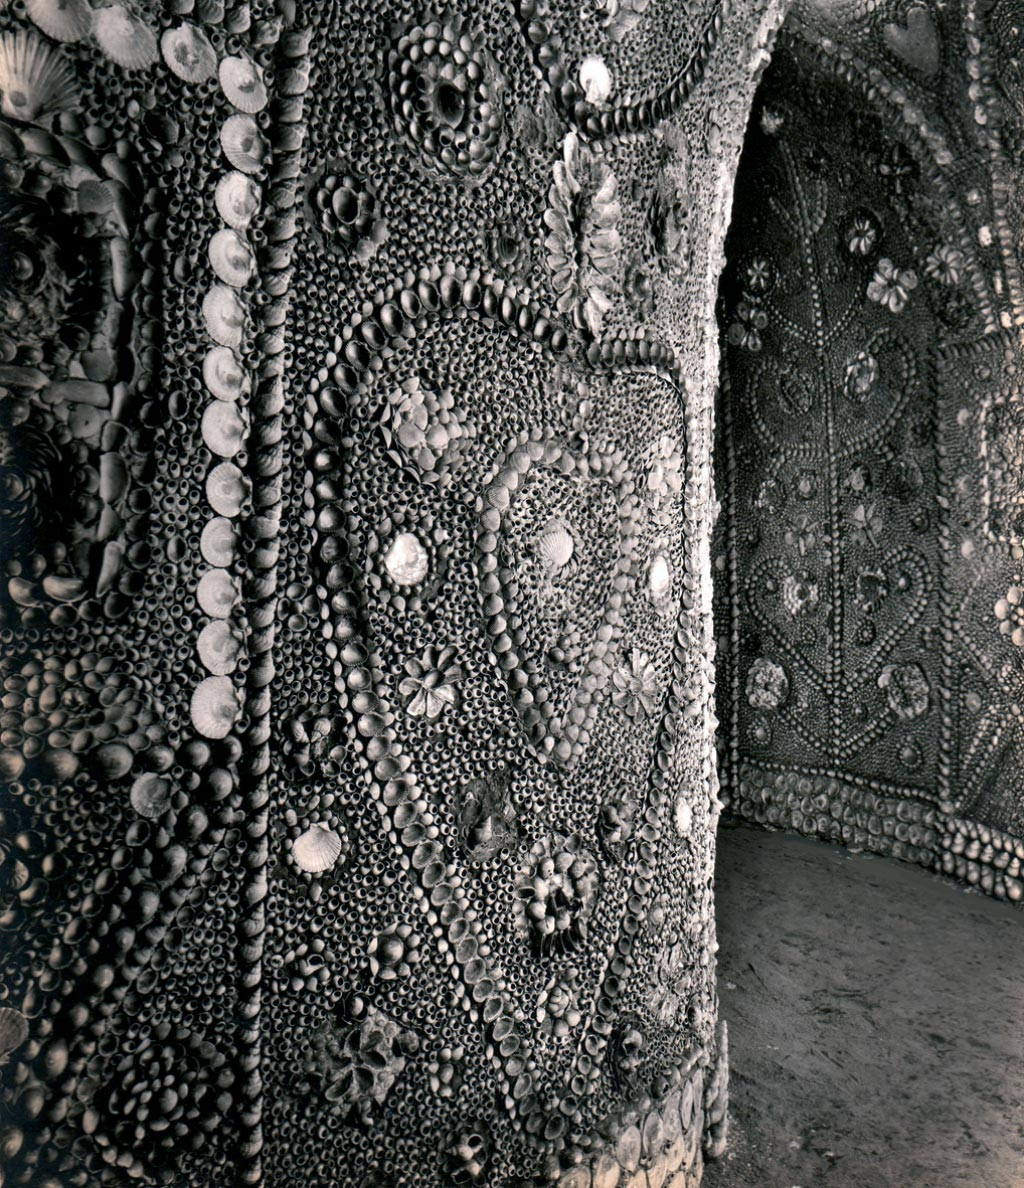 shell-Grotto_06a